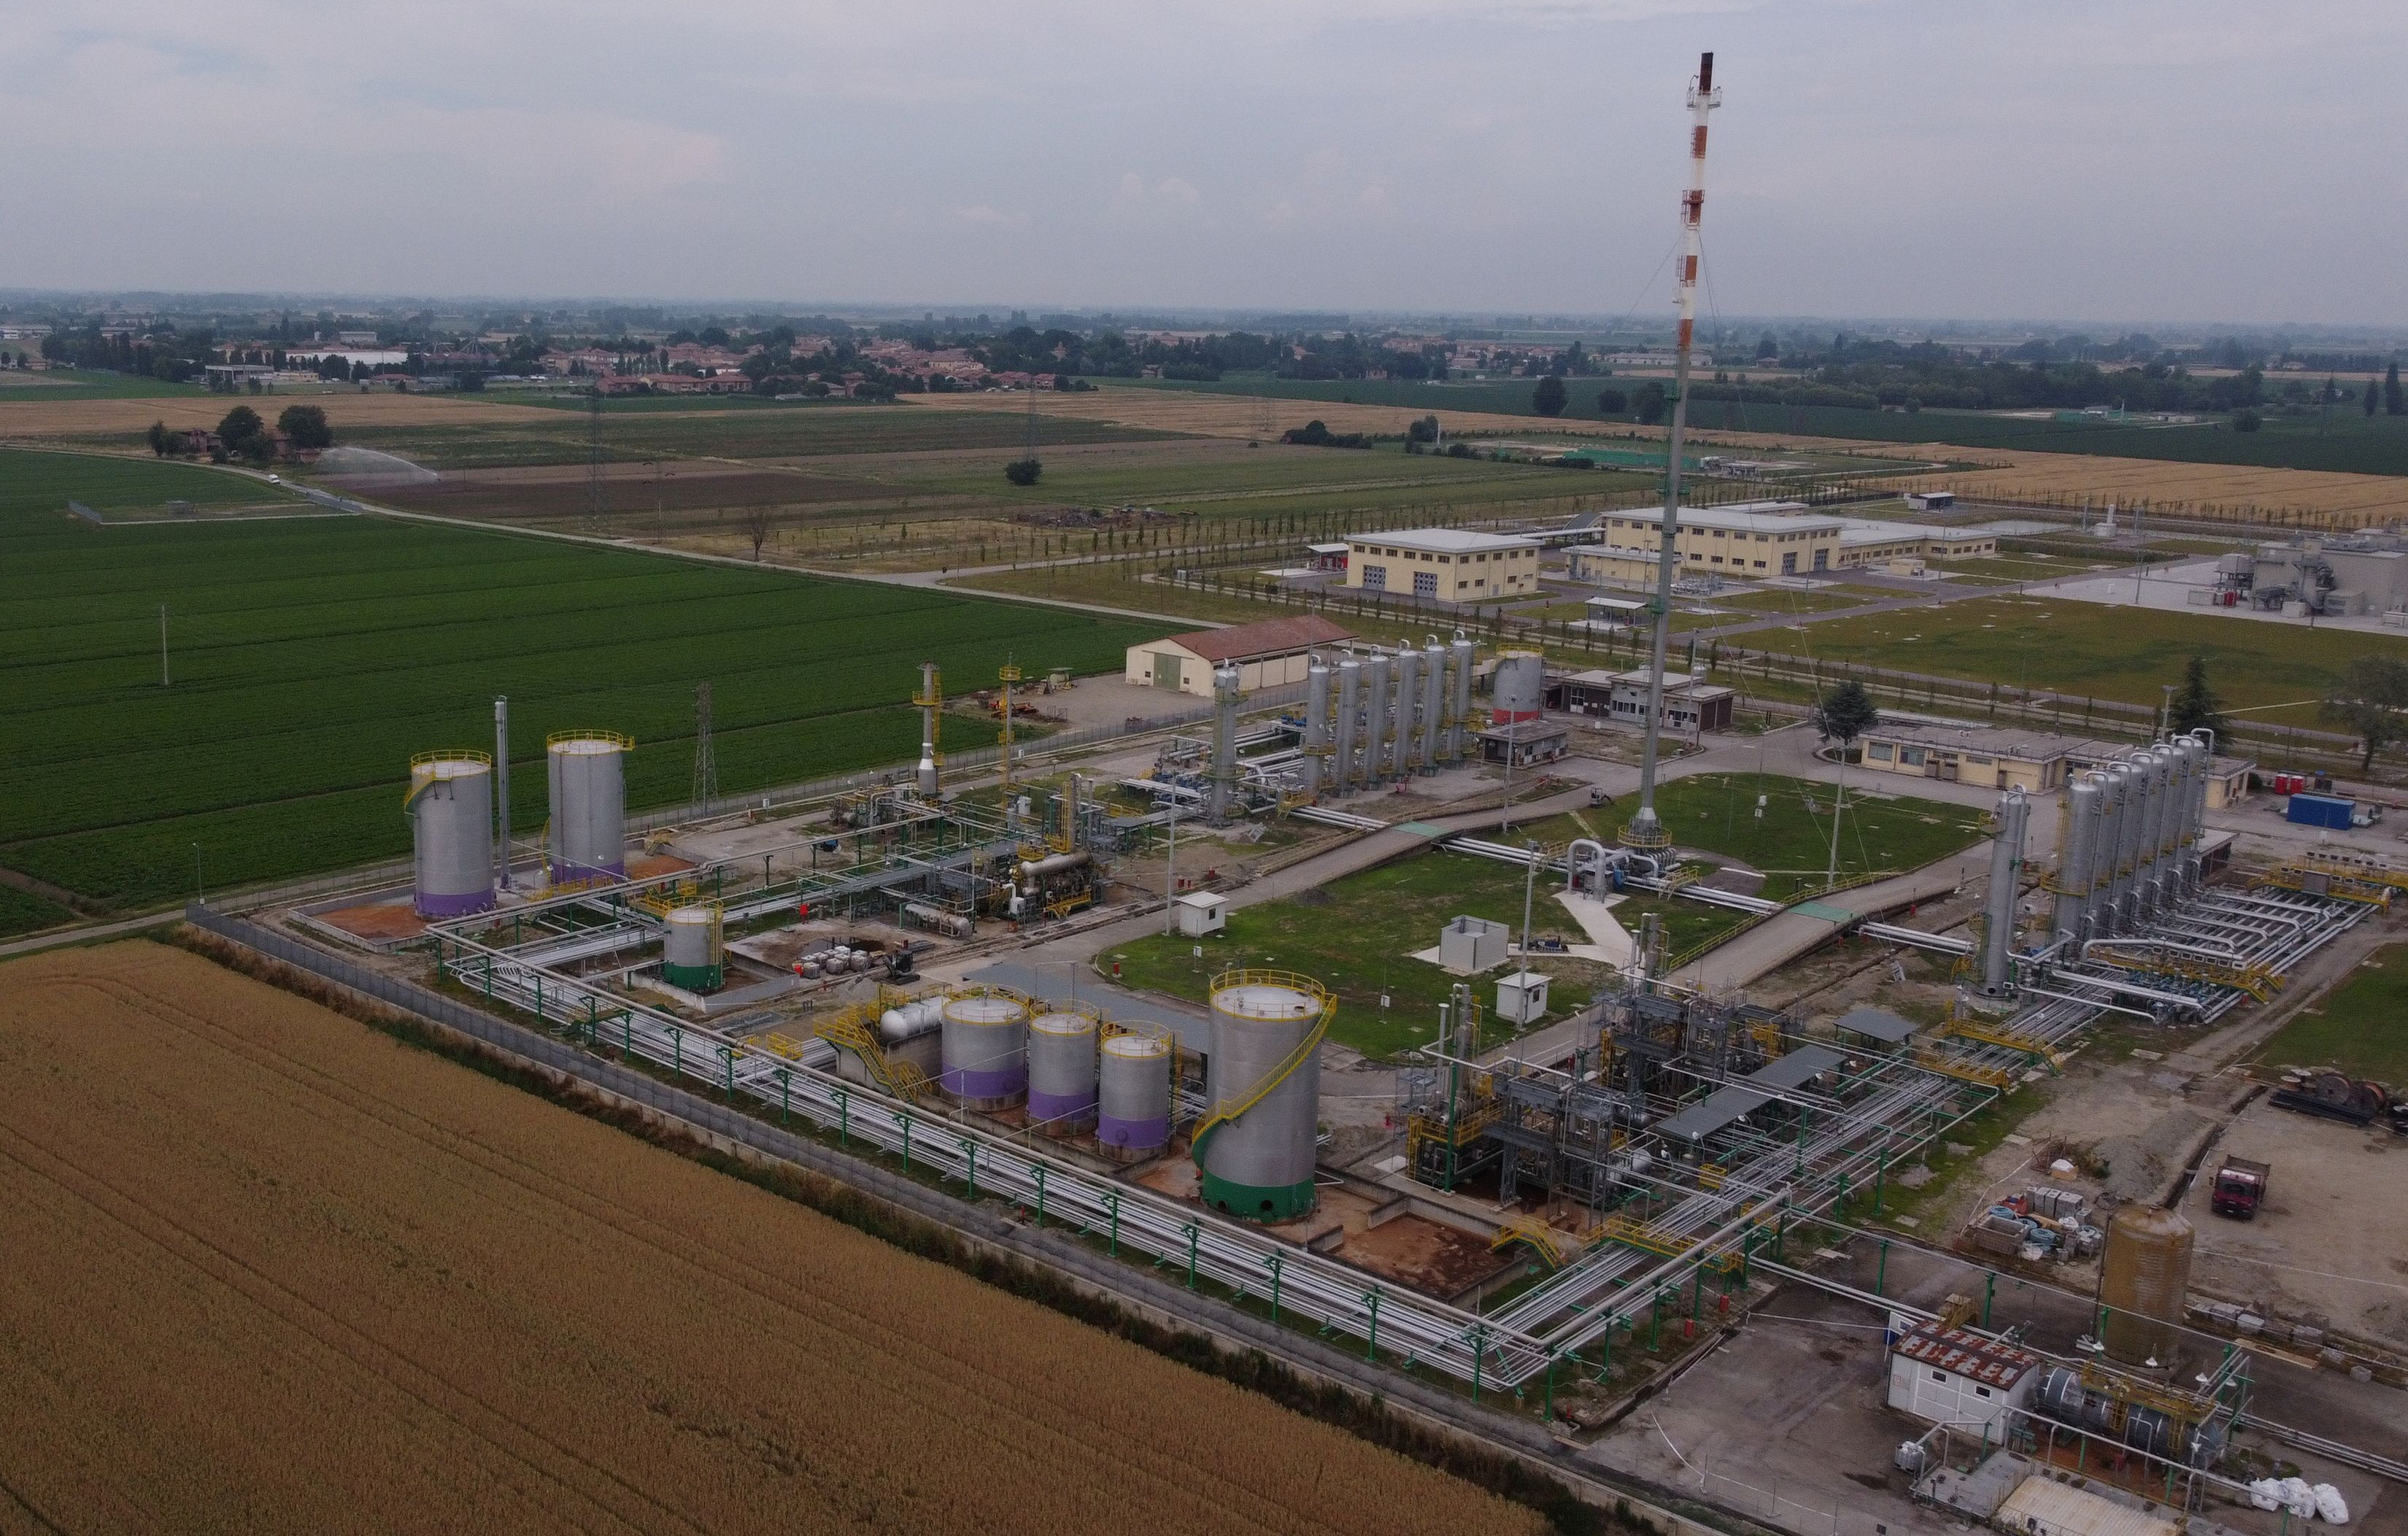 An aerial view of the SNAM underground gas storage facility in Minerbio, Italy, June 11, 2021. Picture taken with a drone on June 11, 2021.   REUTERS/Alex Fraser